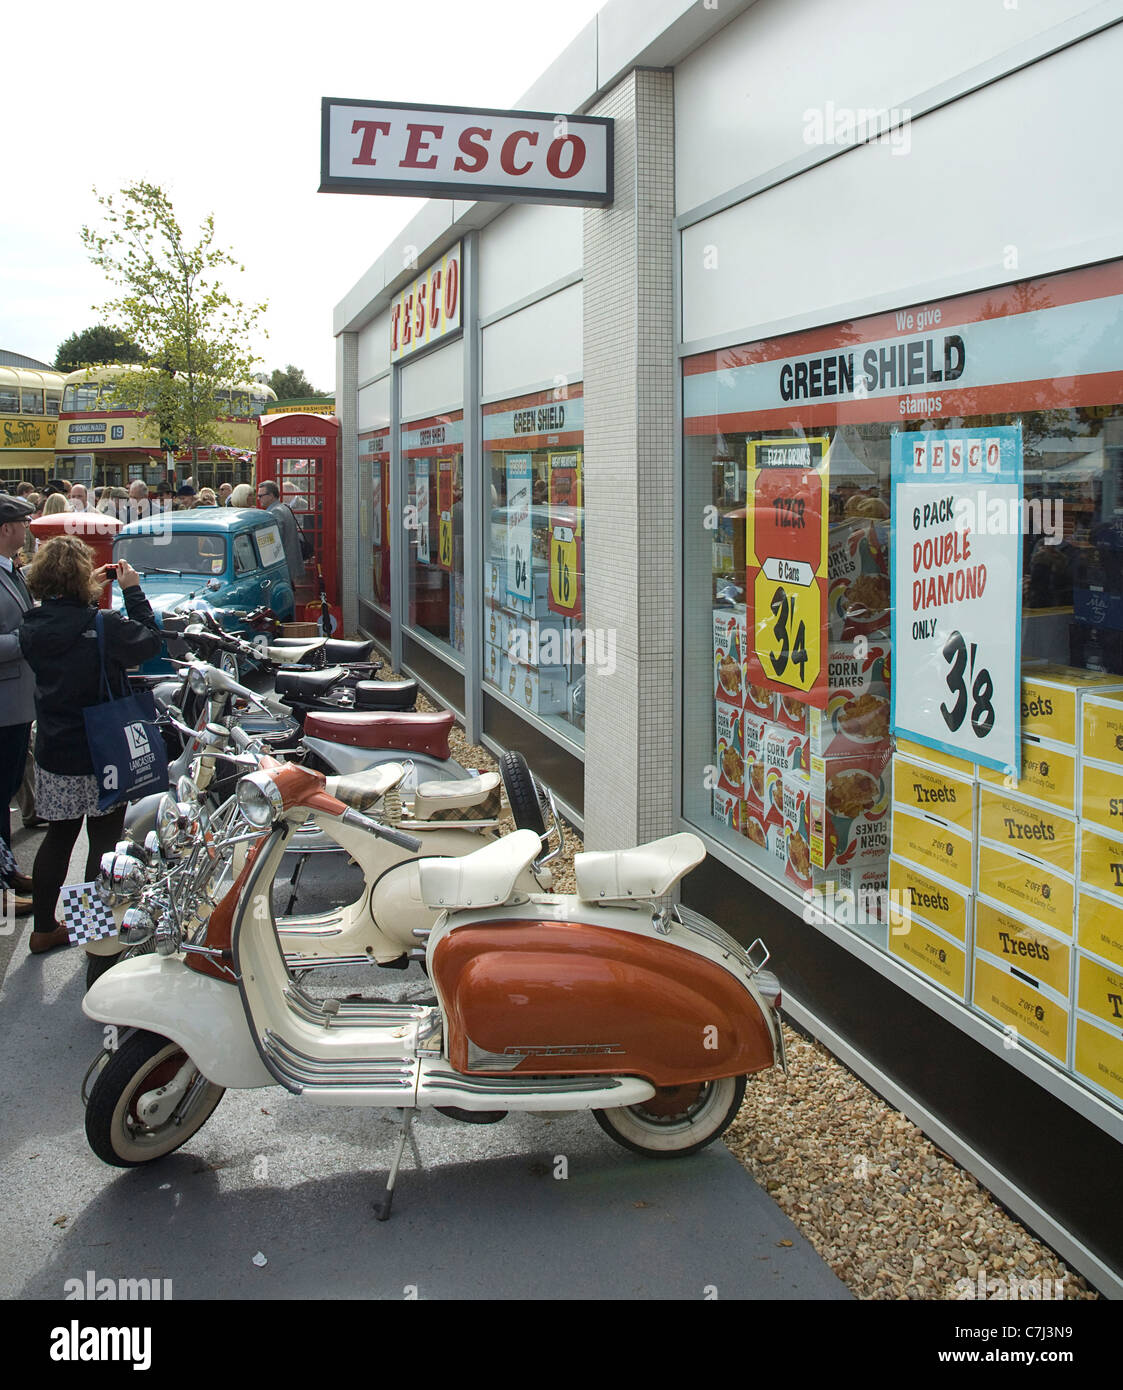 Supermercado Tesco retro con scooters en 2011 Goodwood Revival Imagen De Stock